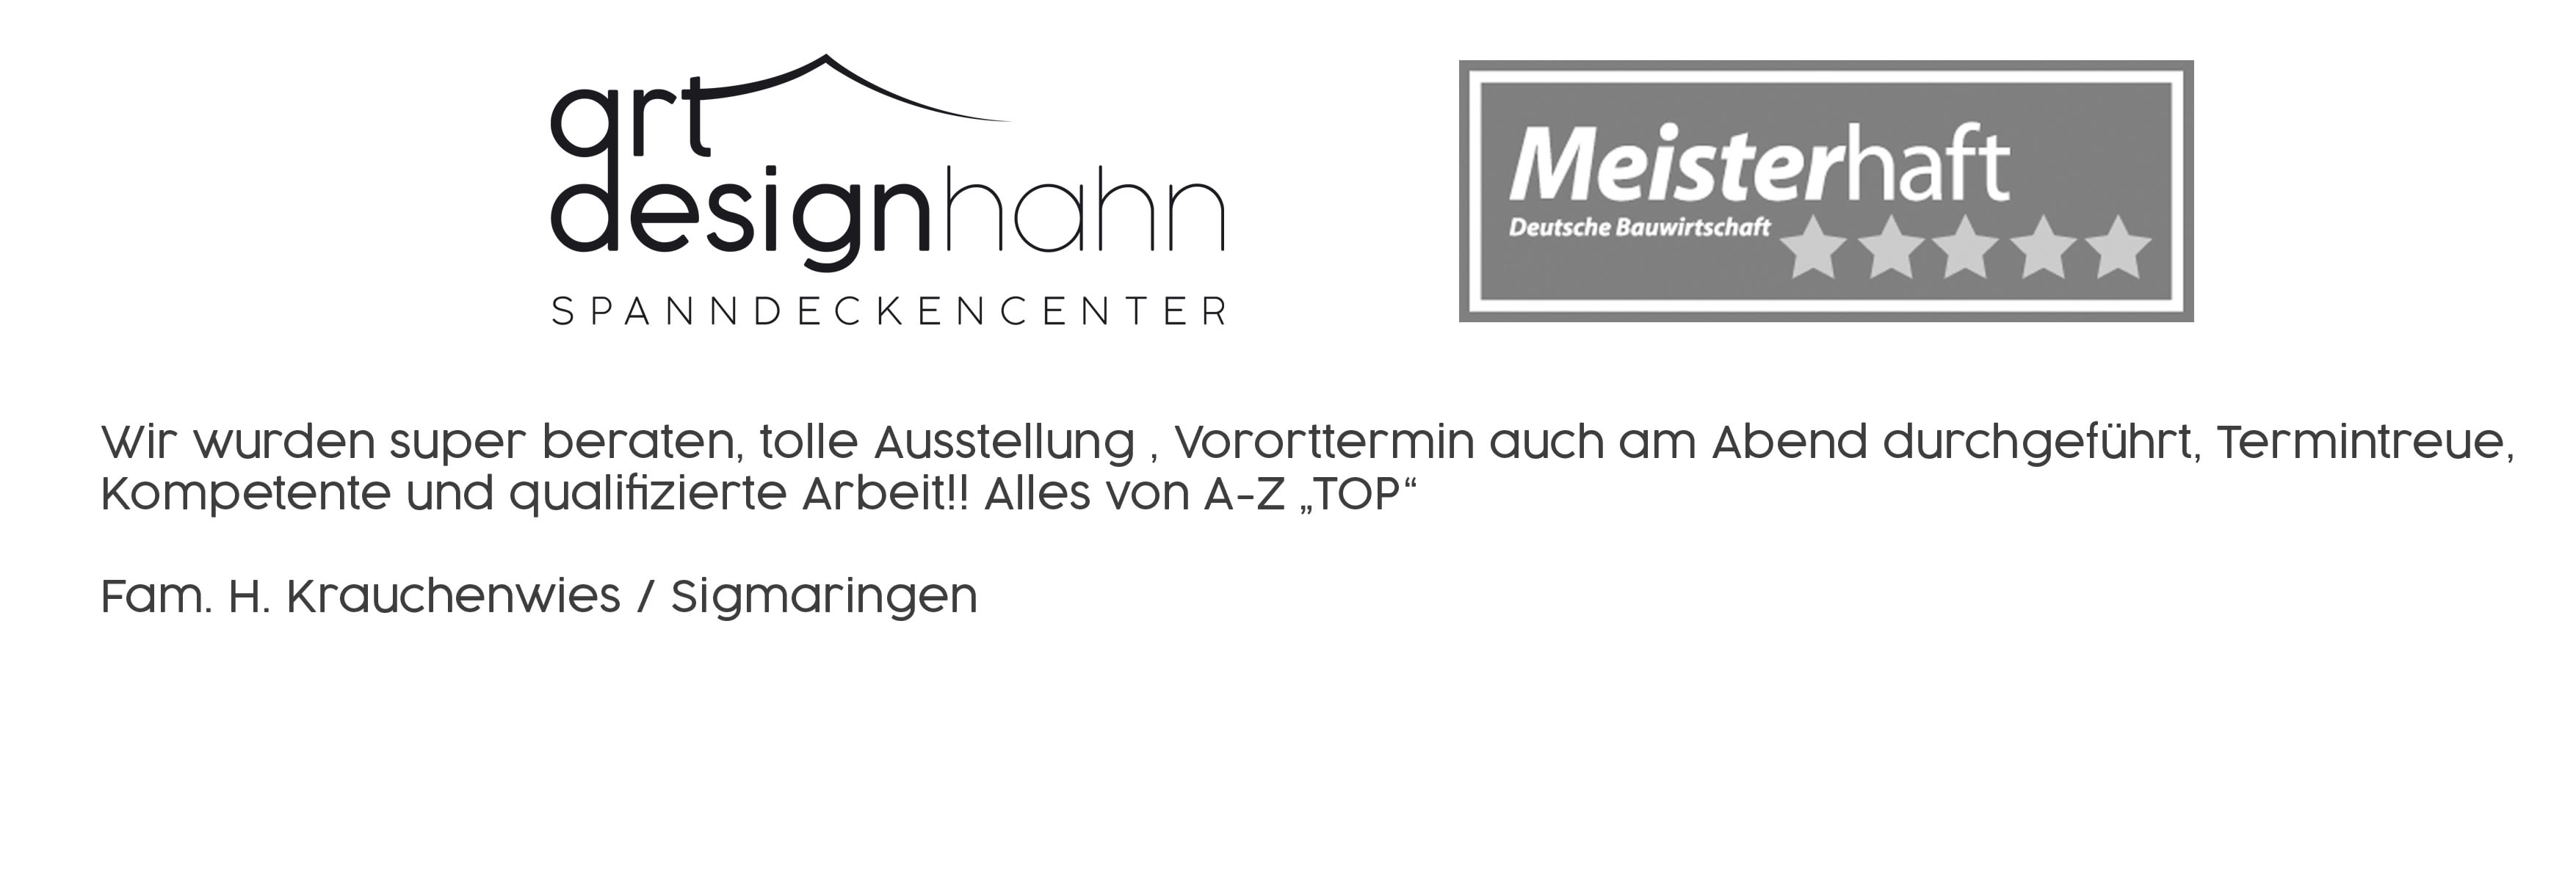 Art Design Hahn Meisterhafte Rezension 37